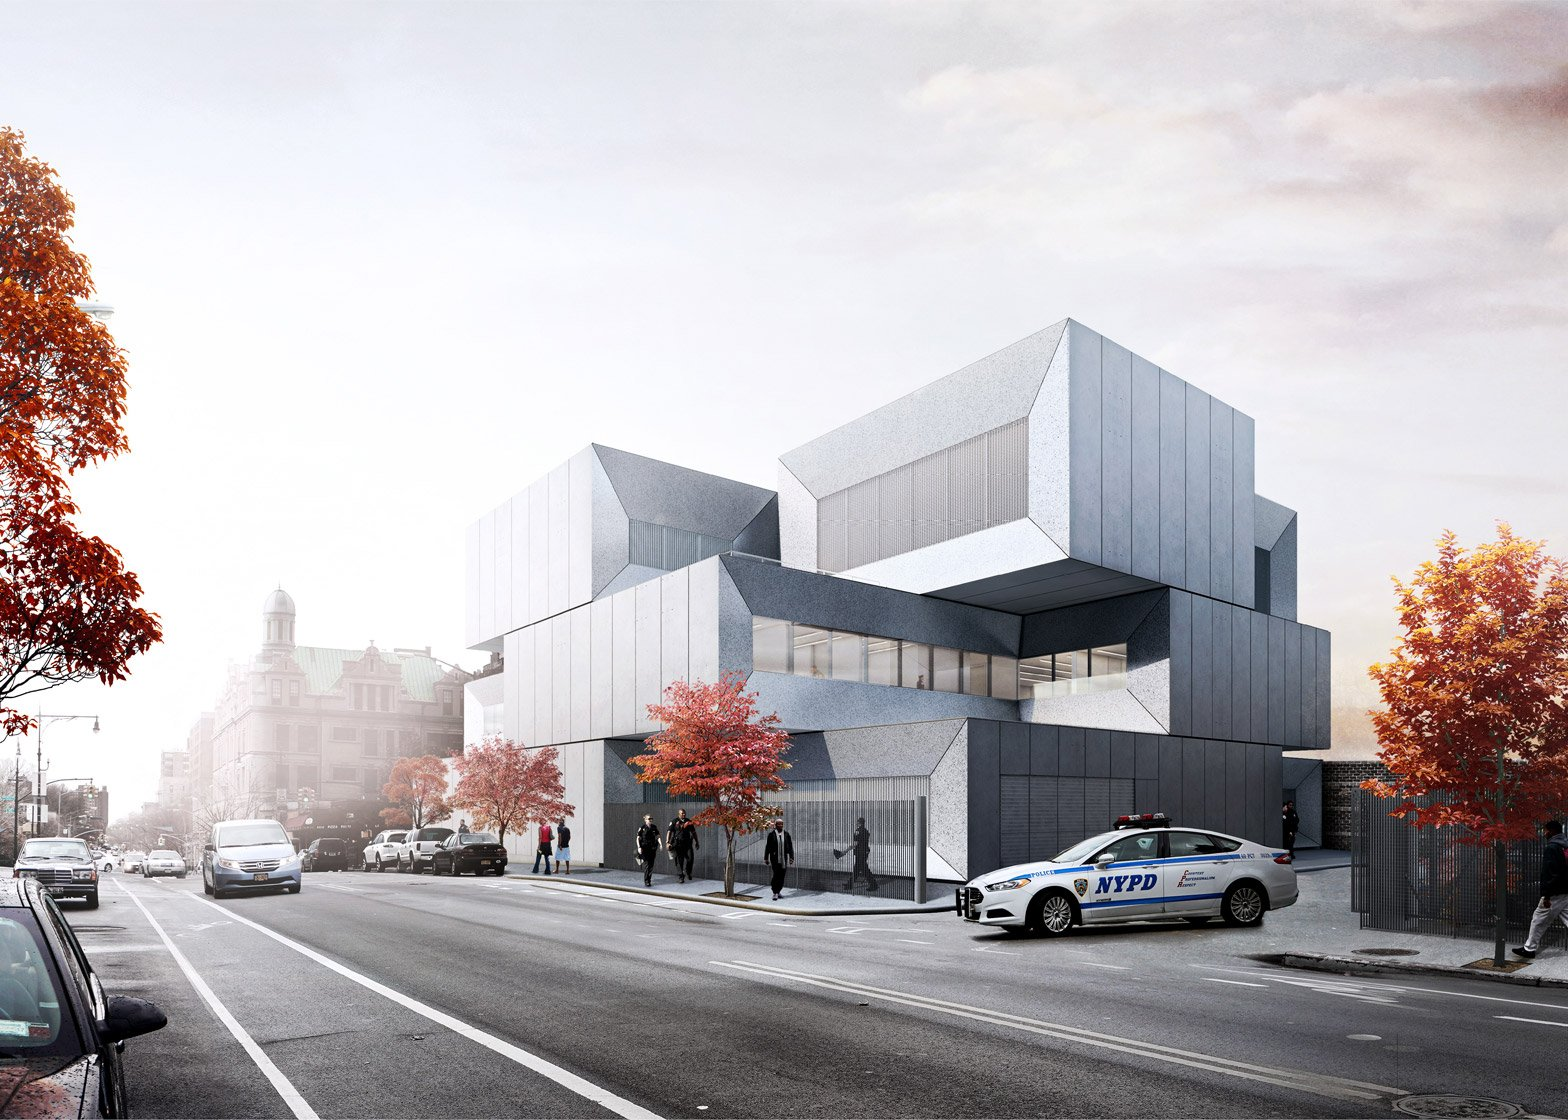 NYPD 40th precinct by BIG